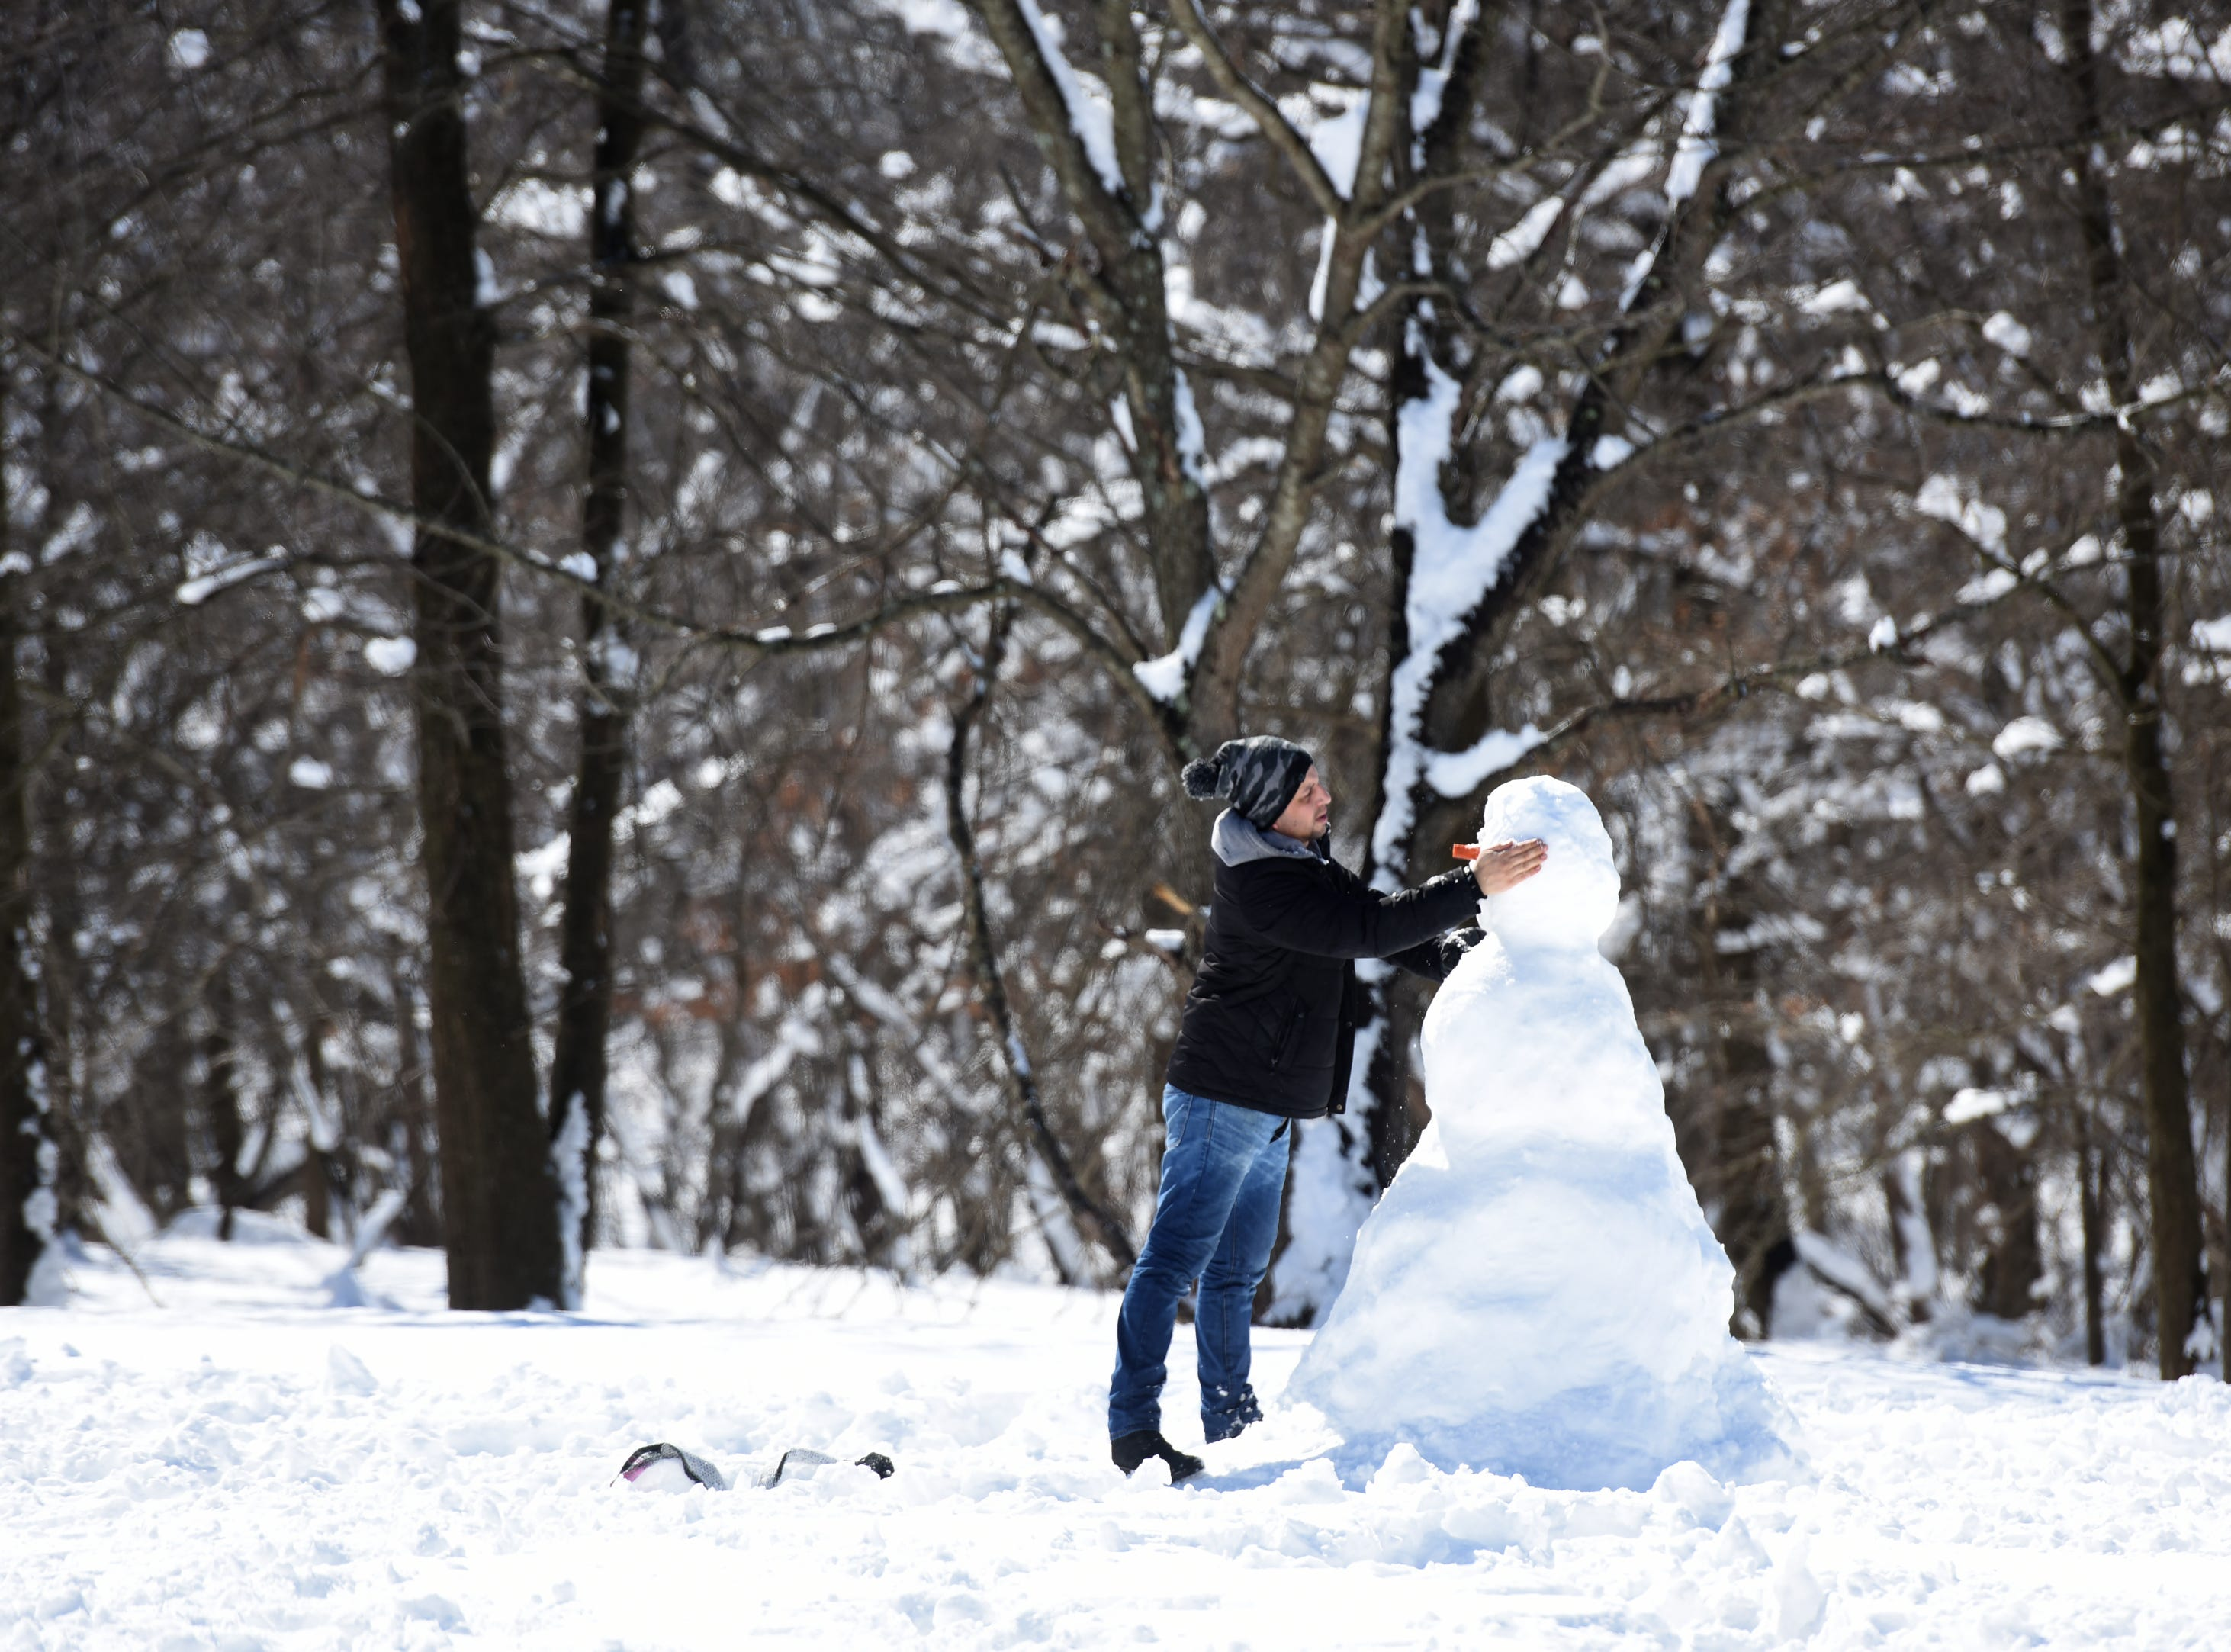 Mohamed Aijyyousi of Clifton, makes a snowman for his kids at Garret Mountain Reservation on Monday, March 4, 2019.